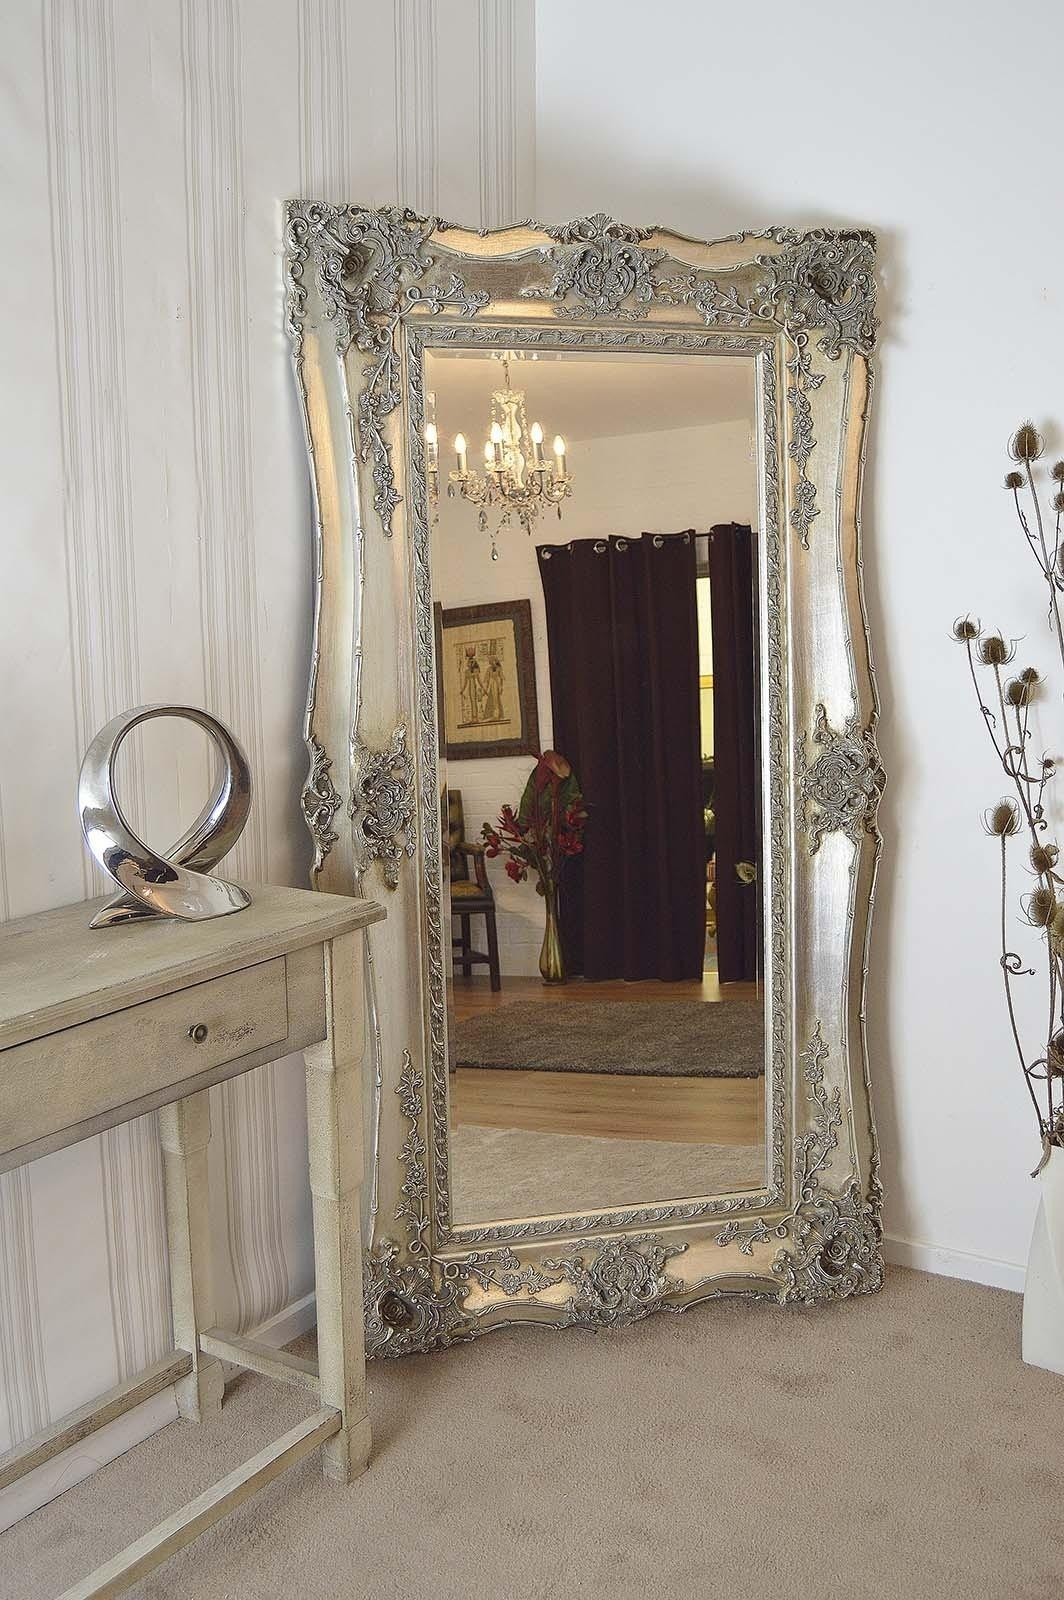 Bedroom Furniture : Large Gold Mirror Free Standing Mirror Wooden Pertaining To Extra Large Gold Mirror (Image 1 of 20)